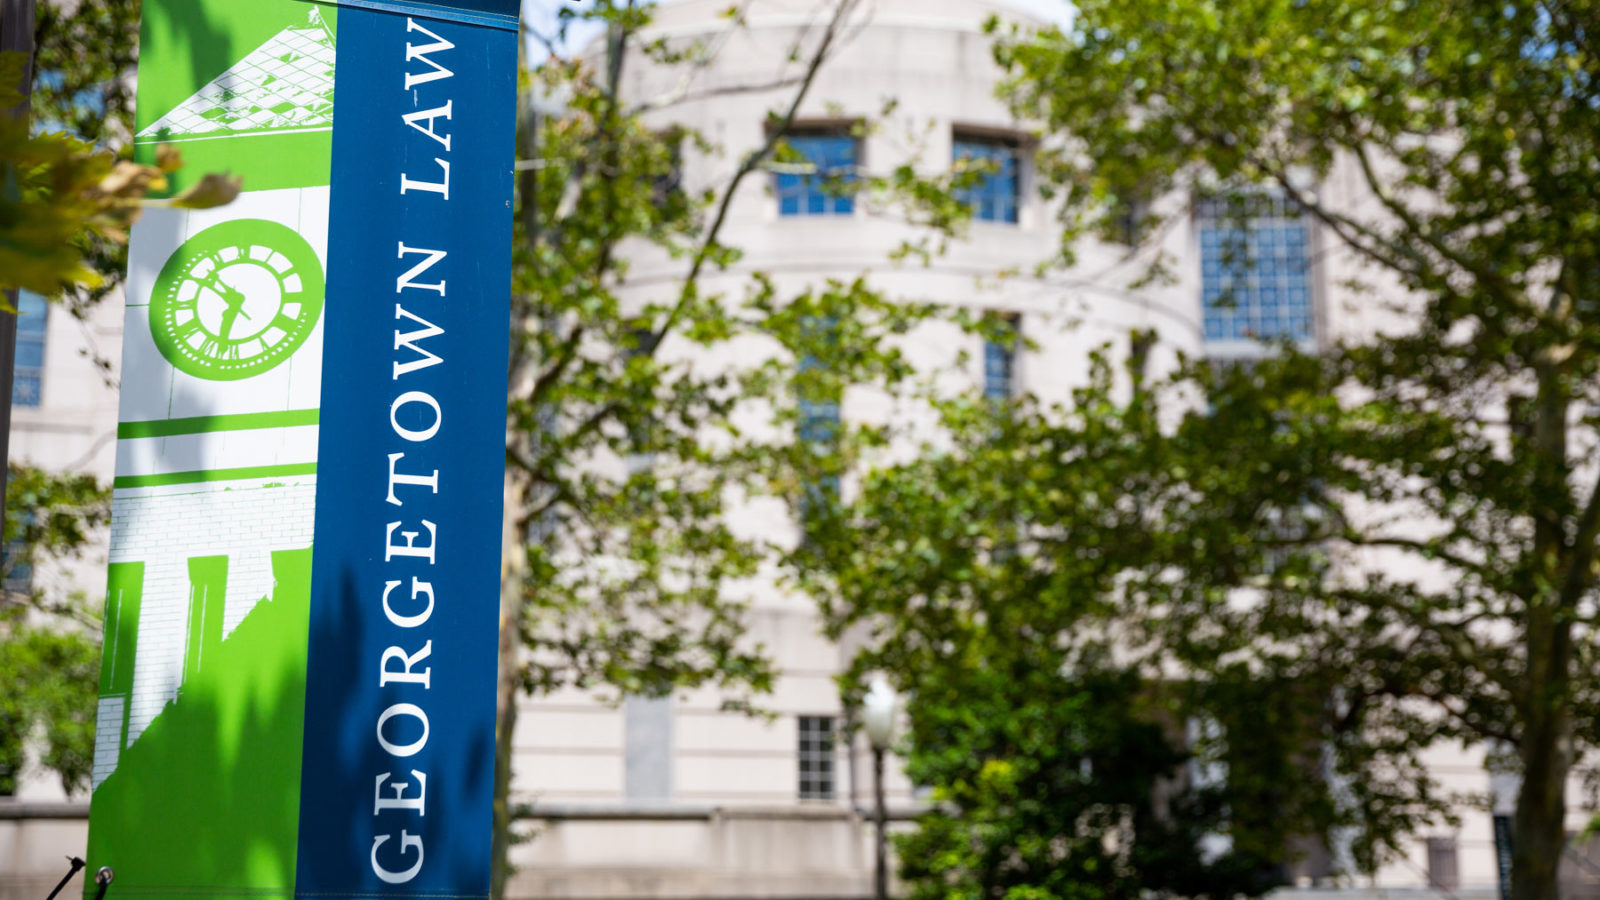 Georgetown Law banner nhangs in front of a building on campus.